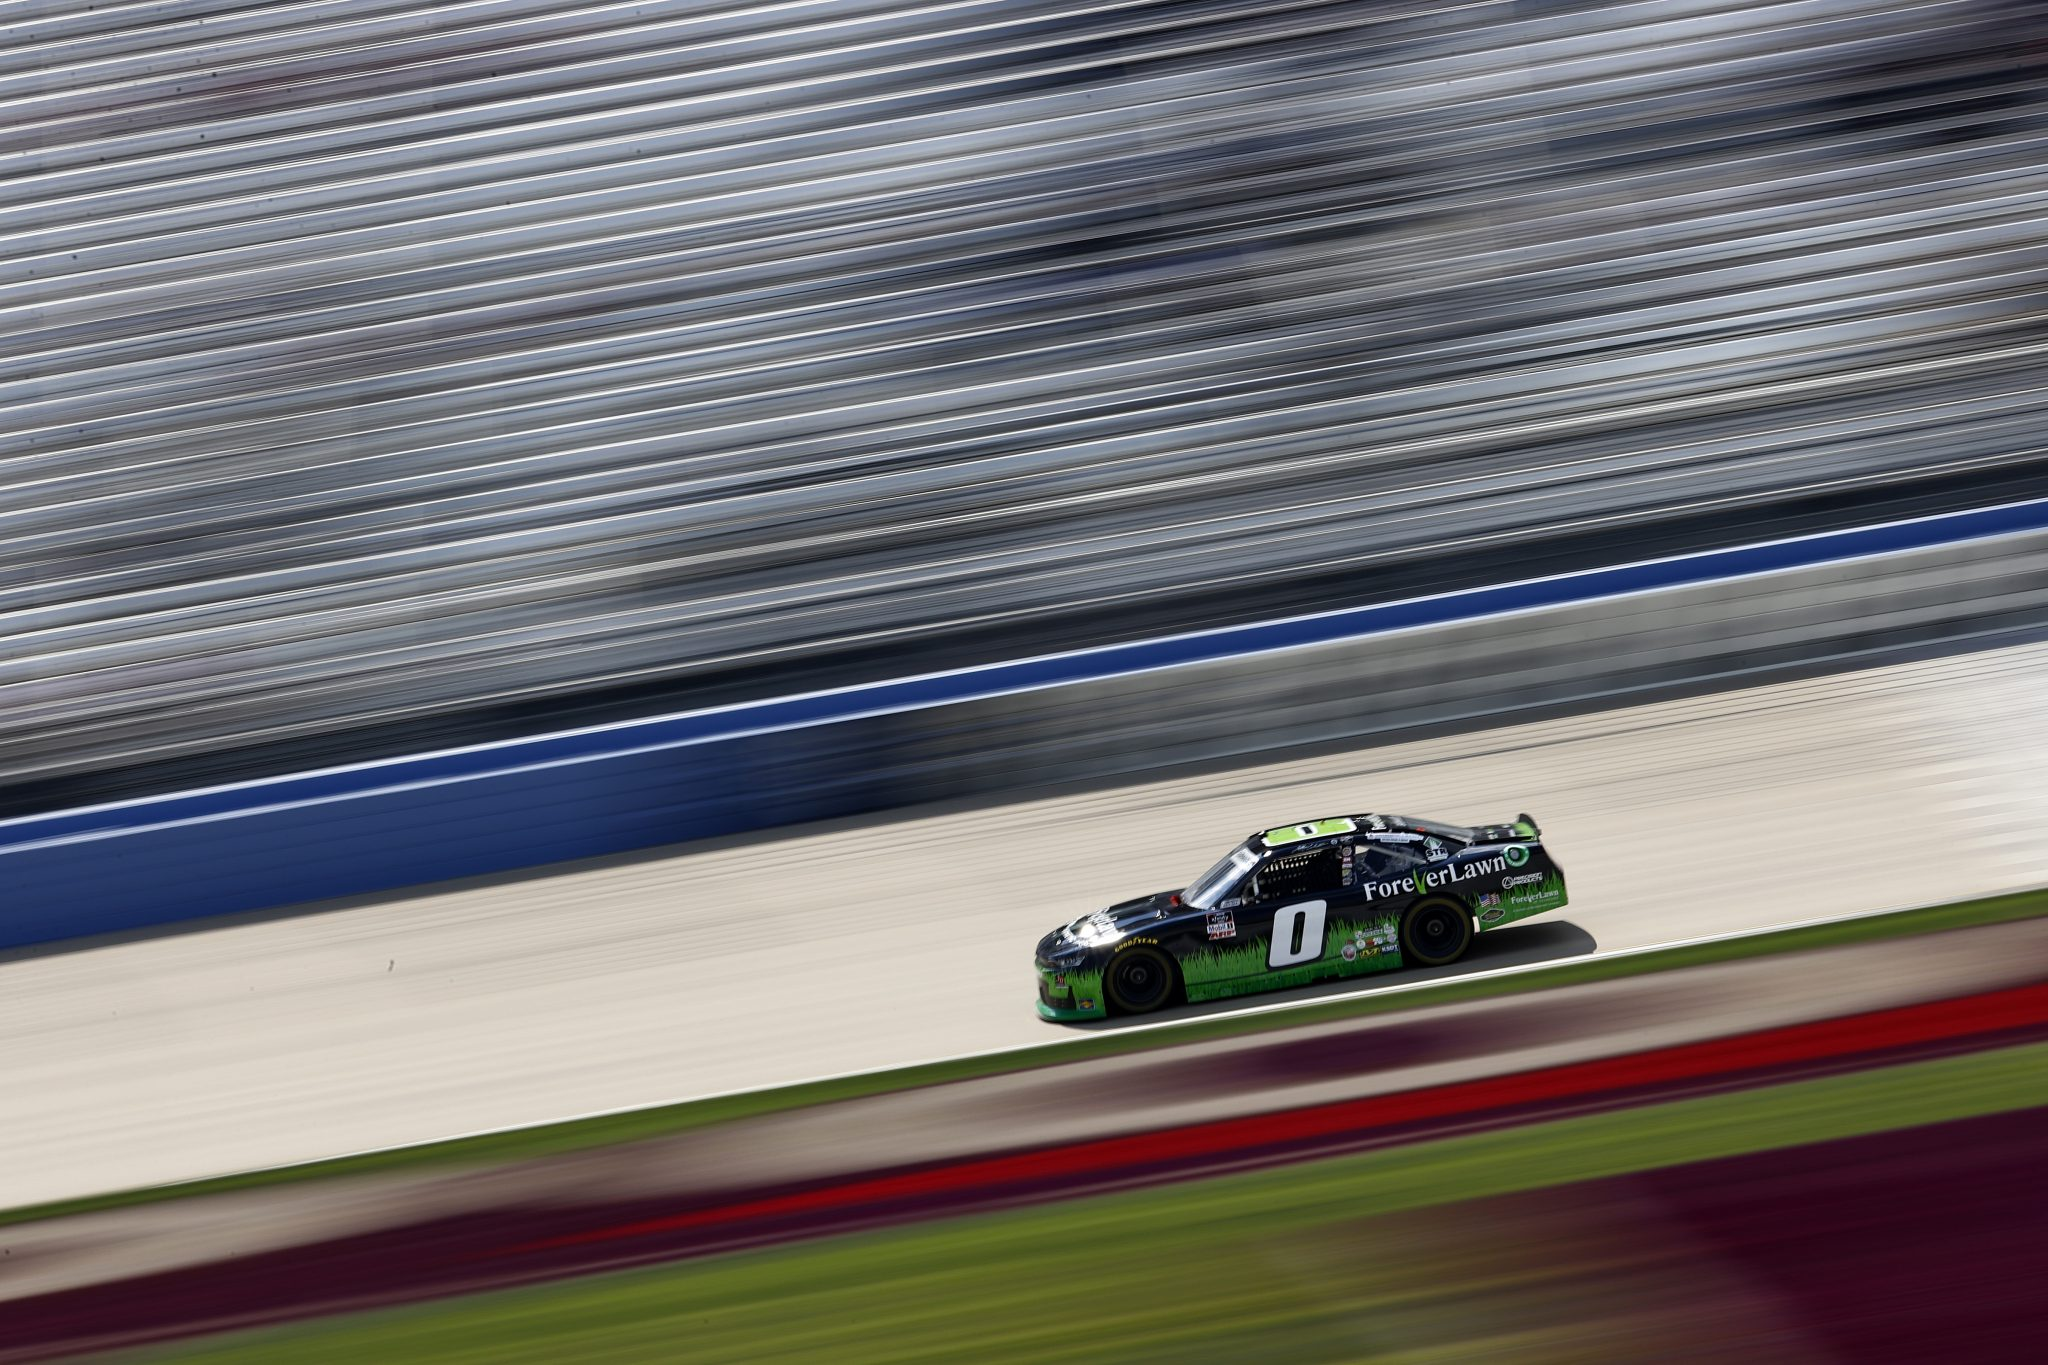 LEBANON, TENNESSEE - JUNE 18: Jeffrey Earnhardt, driver of the #0 ForeverLawn Chevrolet, drives during practice for the NASCAR Xfinity Series Tennessee Lottery 250 at Nashville Superspeedway on June 18, 2021 in Lebanon, Tennessee. (Photo by Jared C. Tilton/Getty Images) | Getty Images